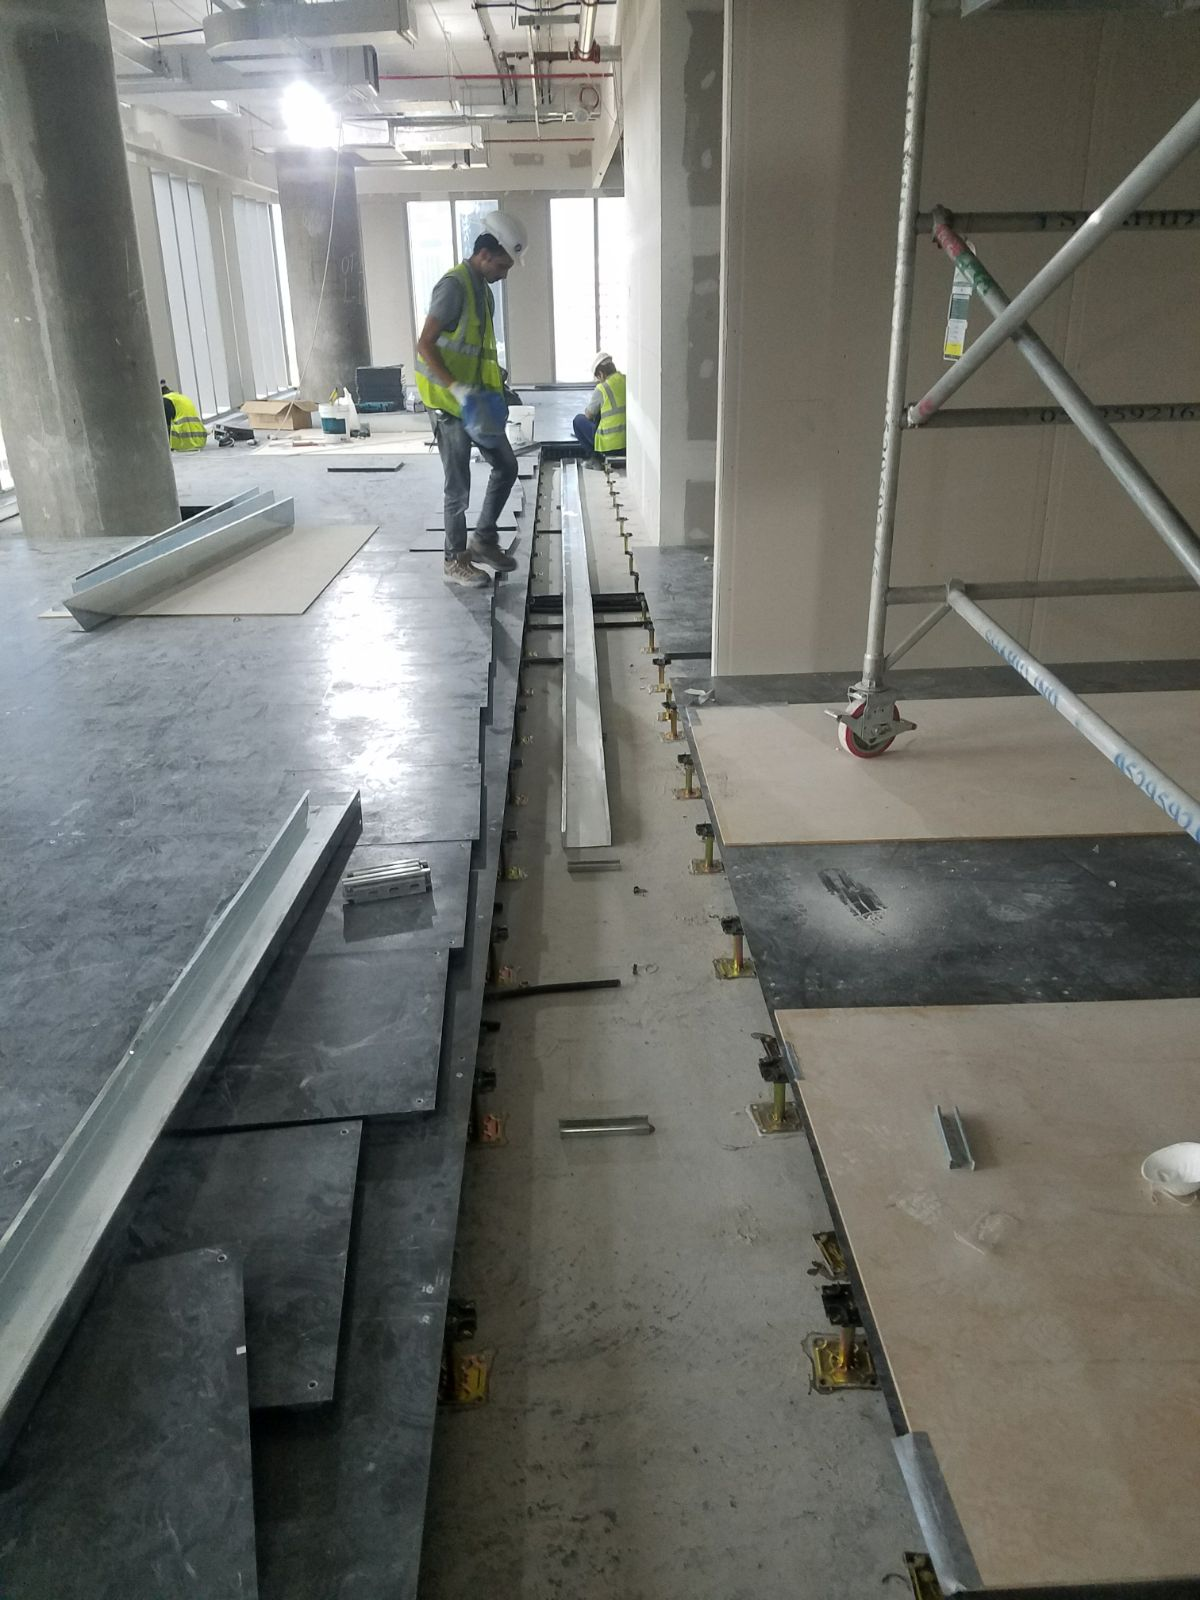 Marriott Office Dubai Devar Raised Access Floor Installation 2